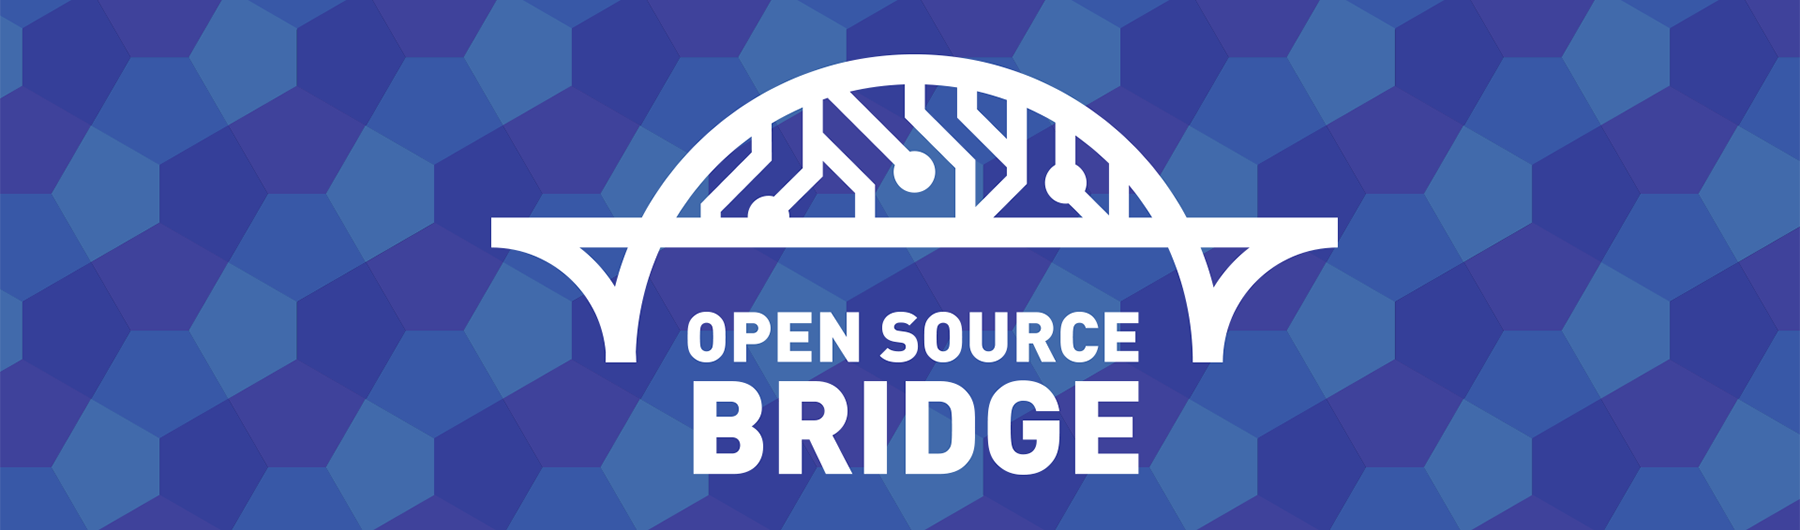 Open Source Bridge 10 Year Celebration